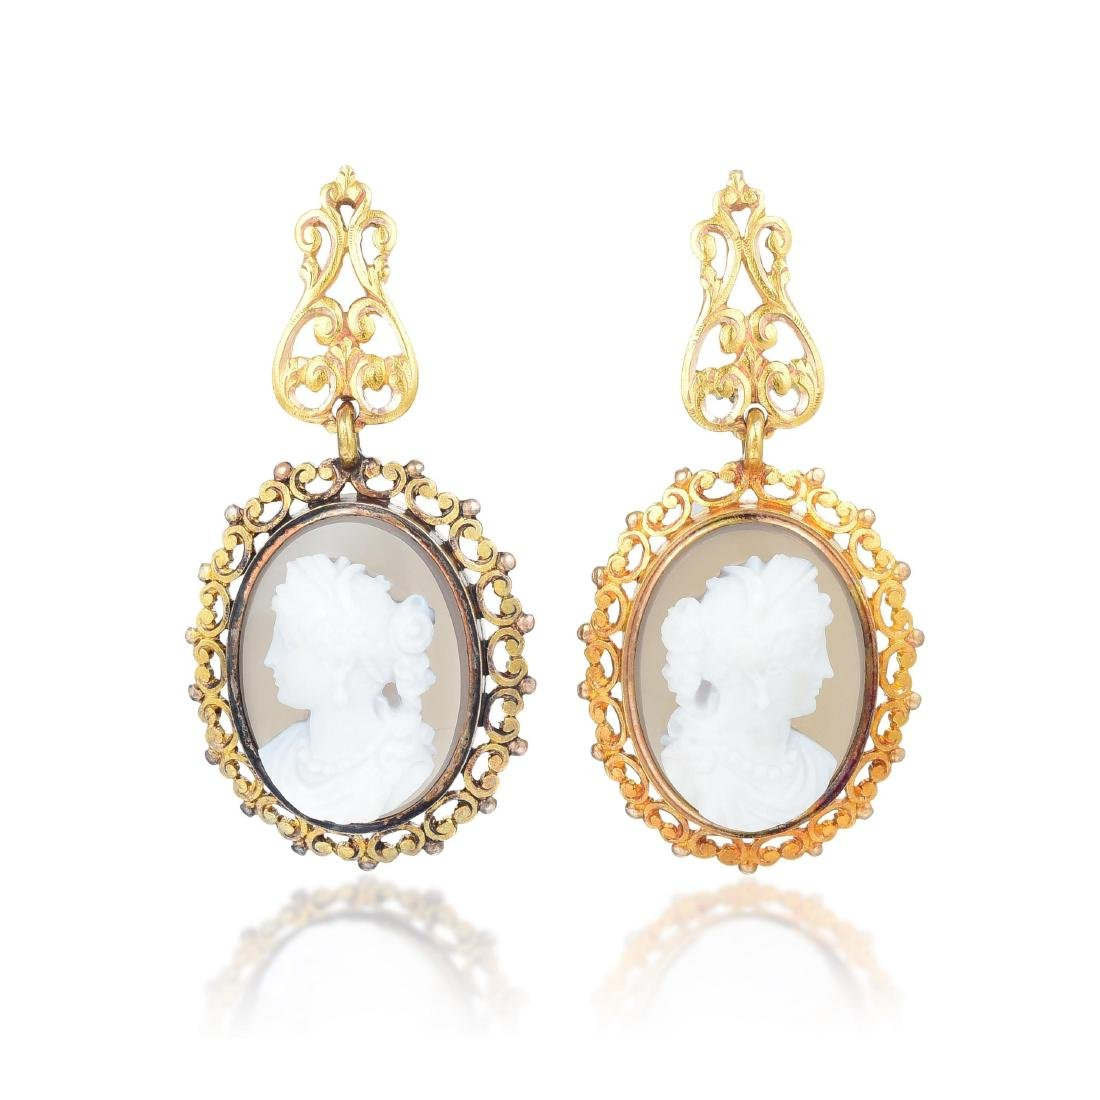 A Suite of 18K Gold and Hardstone Victorian Cameo - 4